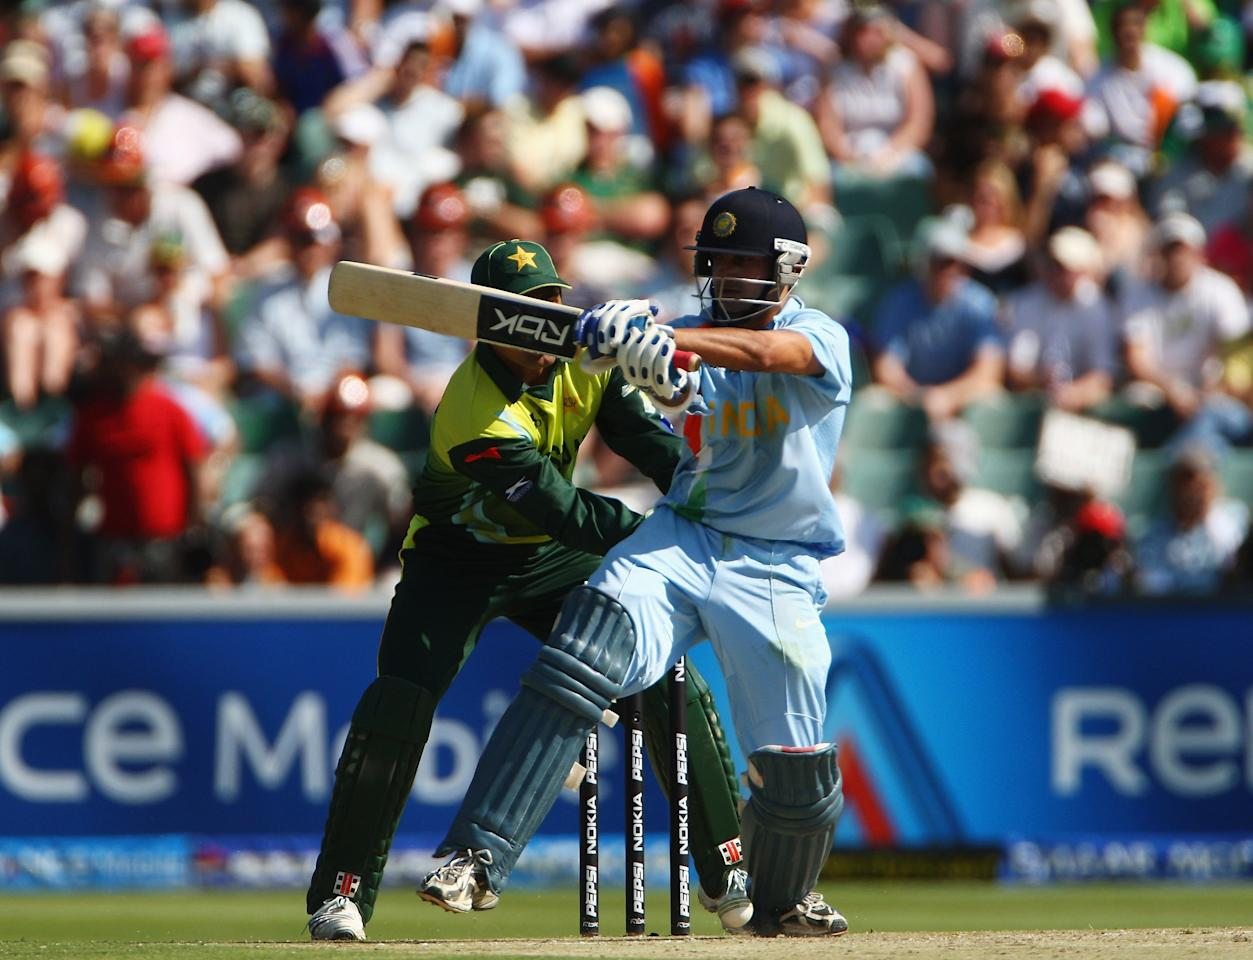 JOHANNESBURG, SOUTH AFRICA - SEPTEMBER 24:  Gautam Gambhir of India hits out during the Twenty20 Championship Final match between Pakistan and India at The Wanderers Stadium on September 24, 2007 in Johannesburg, South Africa.  (Photo by Tom Shaw/Getty Images)